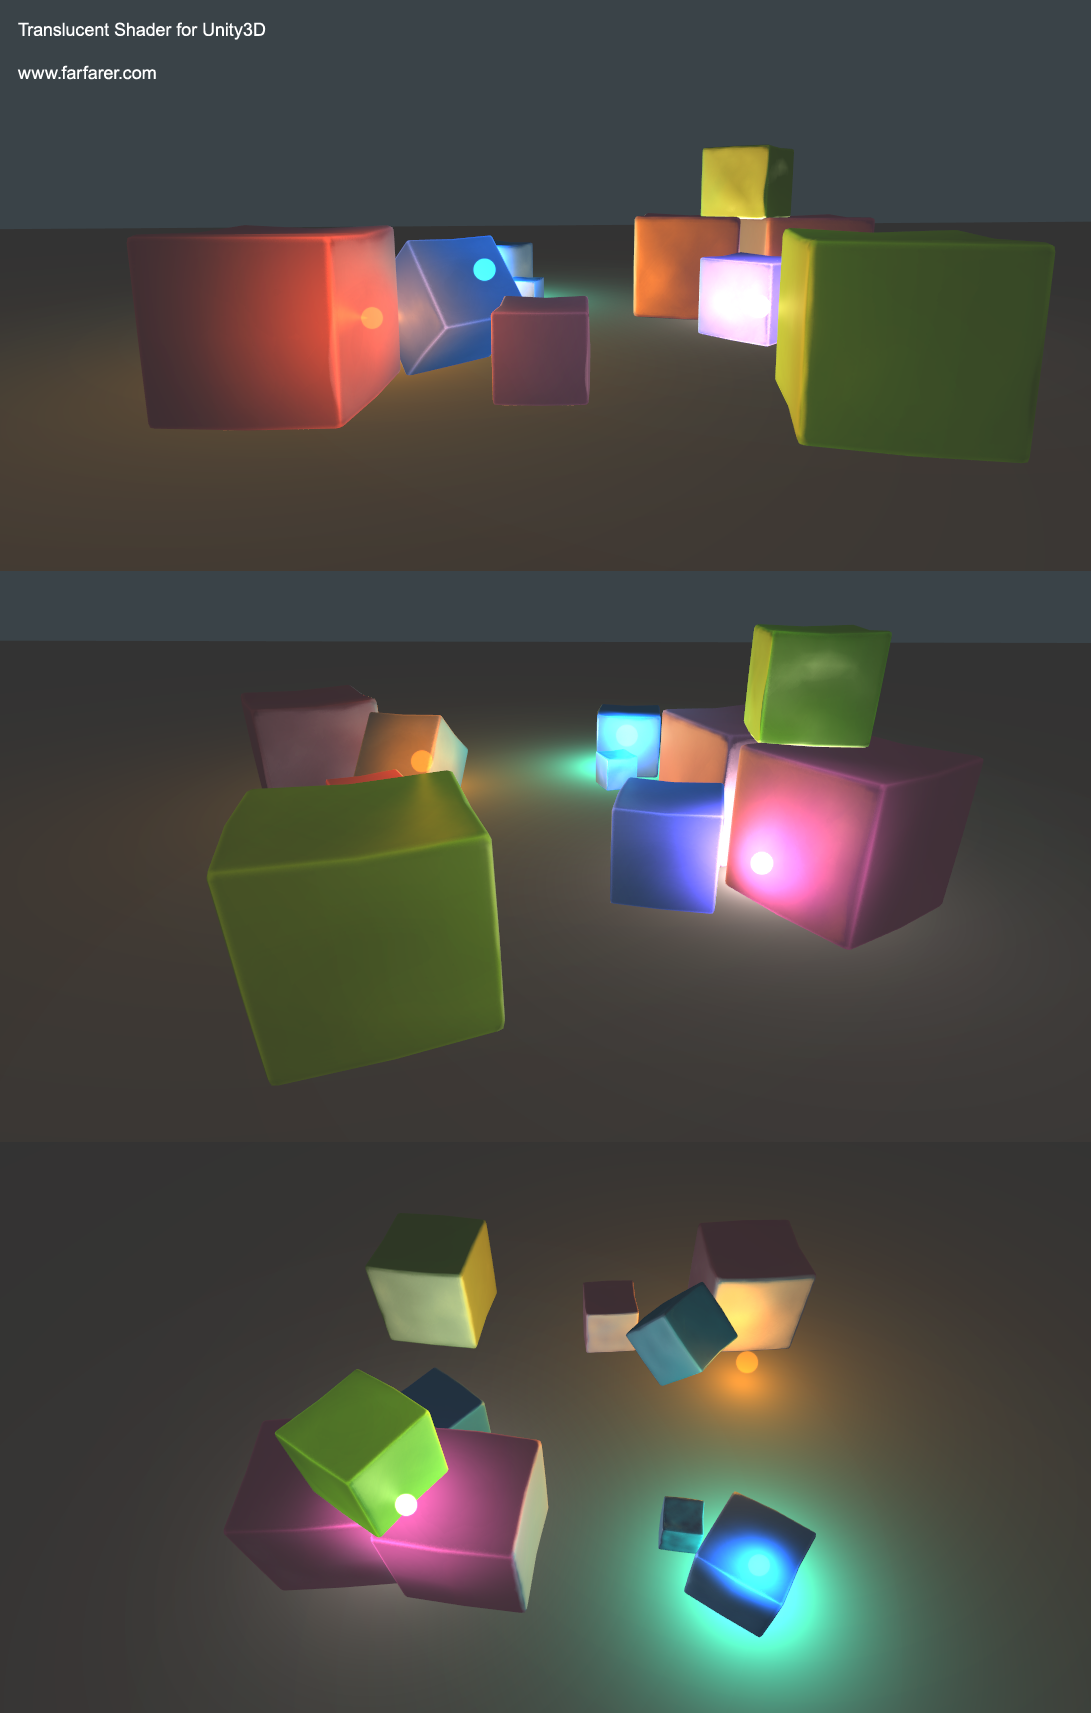 Translucent Shader for Unity3D | James O'Hare, Game